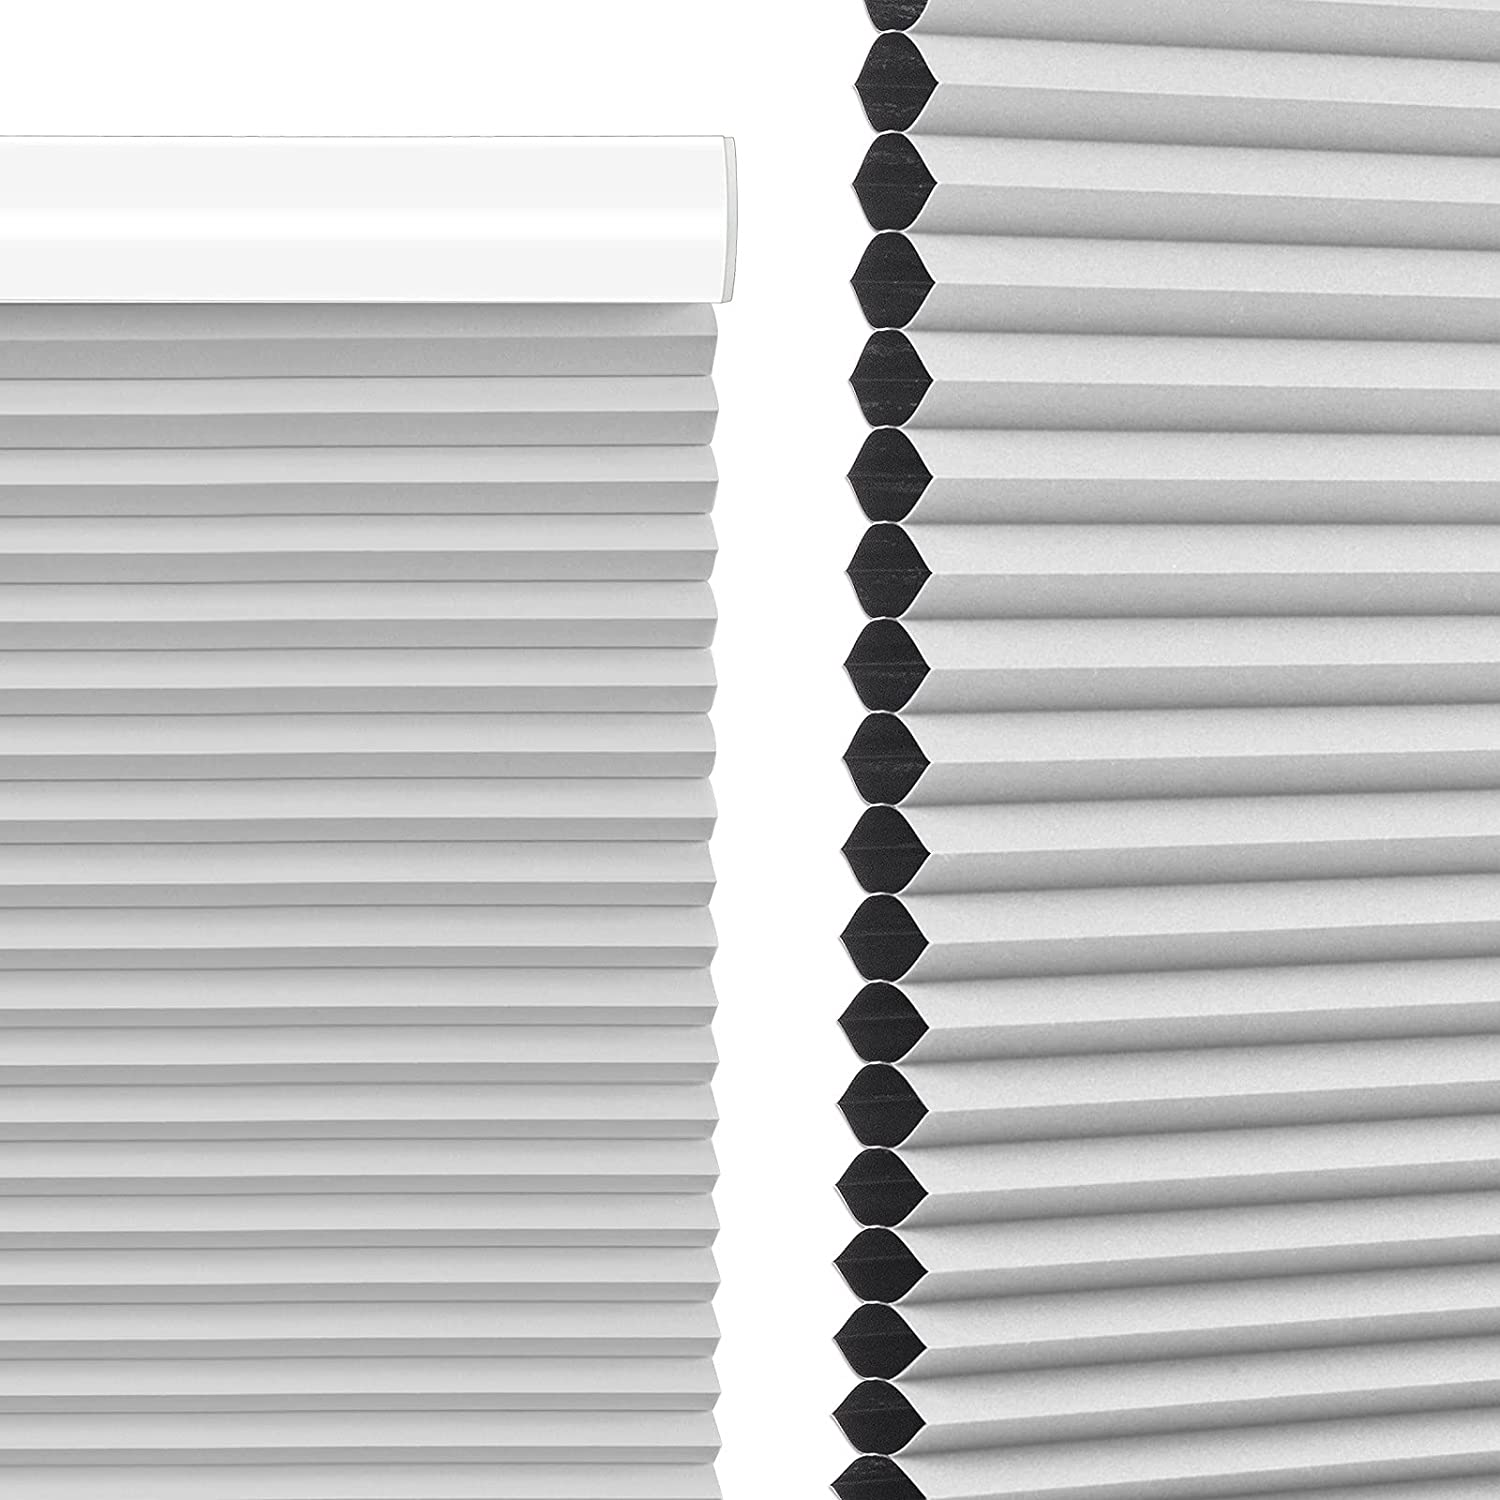 MiLin Blinds for Windows Cordless 4 years warranty Blin lowest price Cellular Blackout Shades